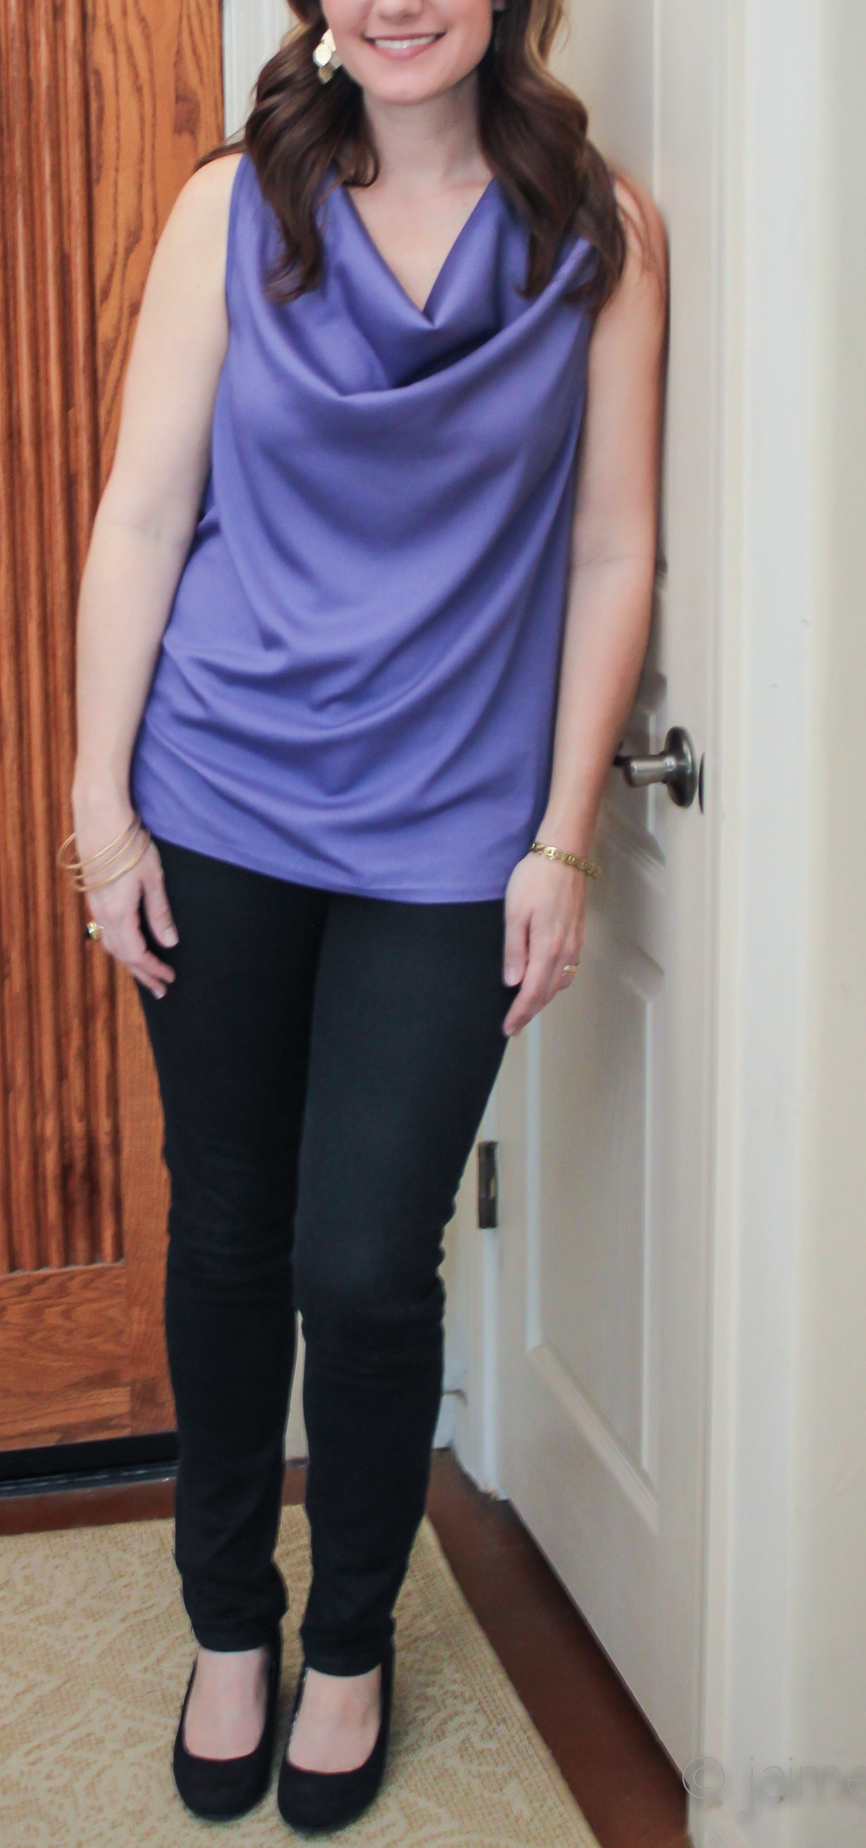 stitch fix review-3609.jpg